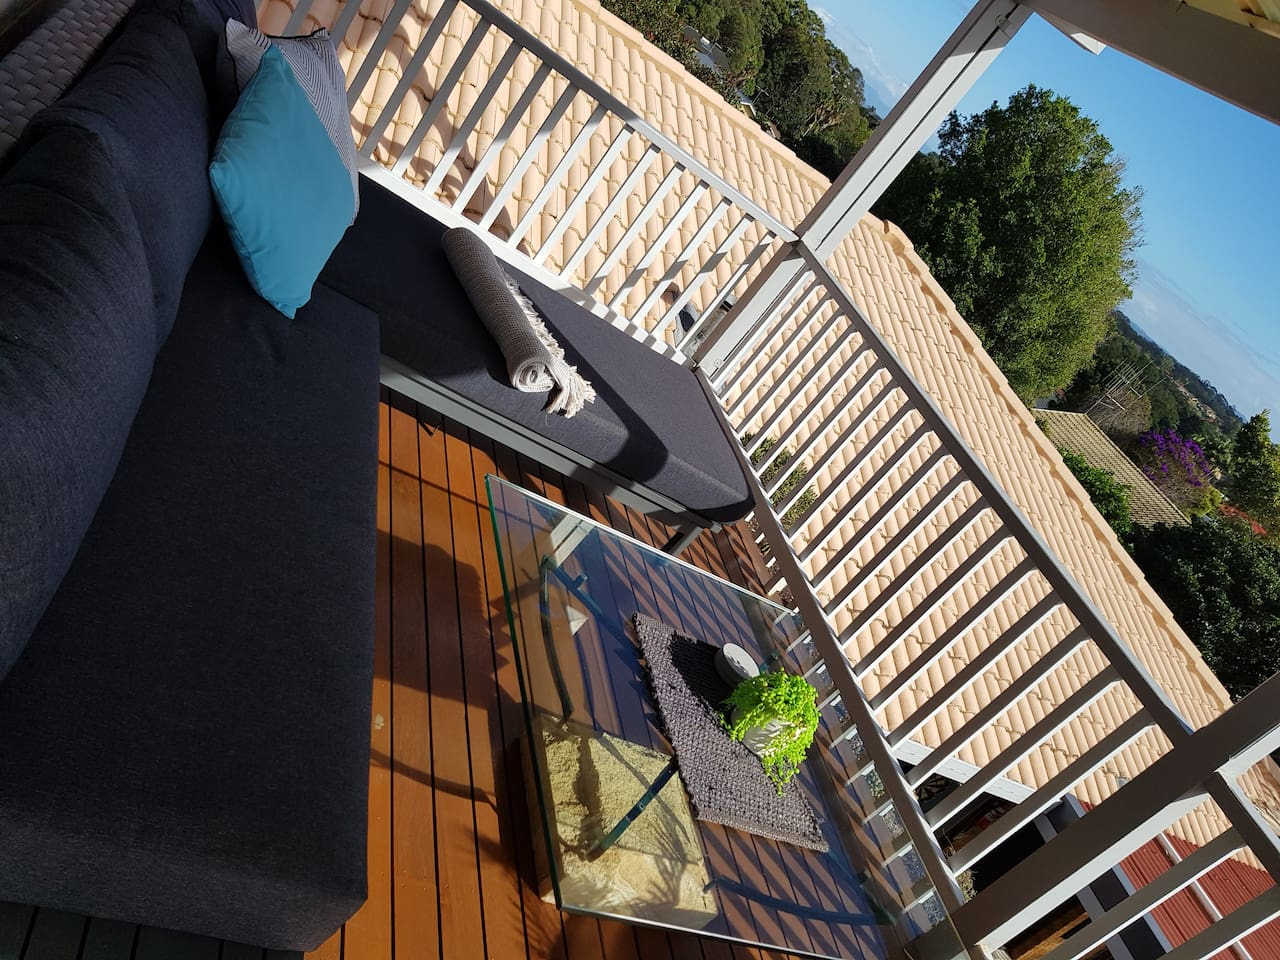 North facing deck with views and bbq